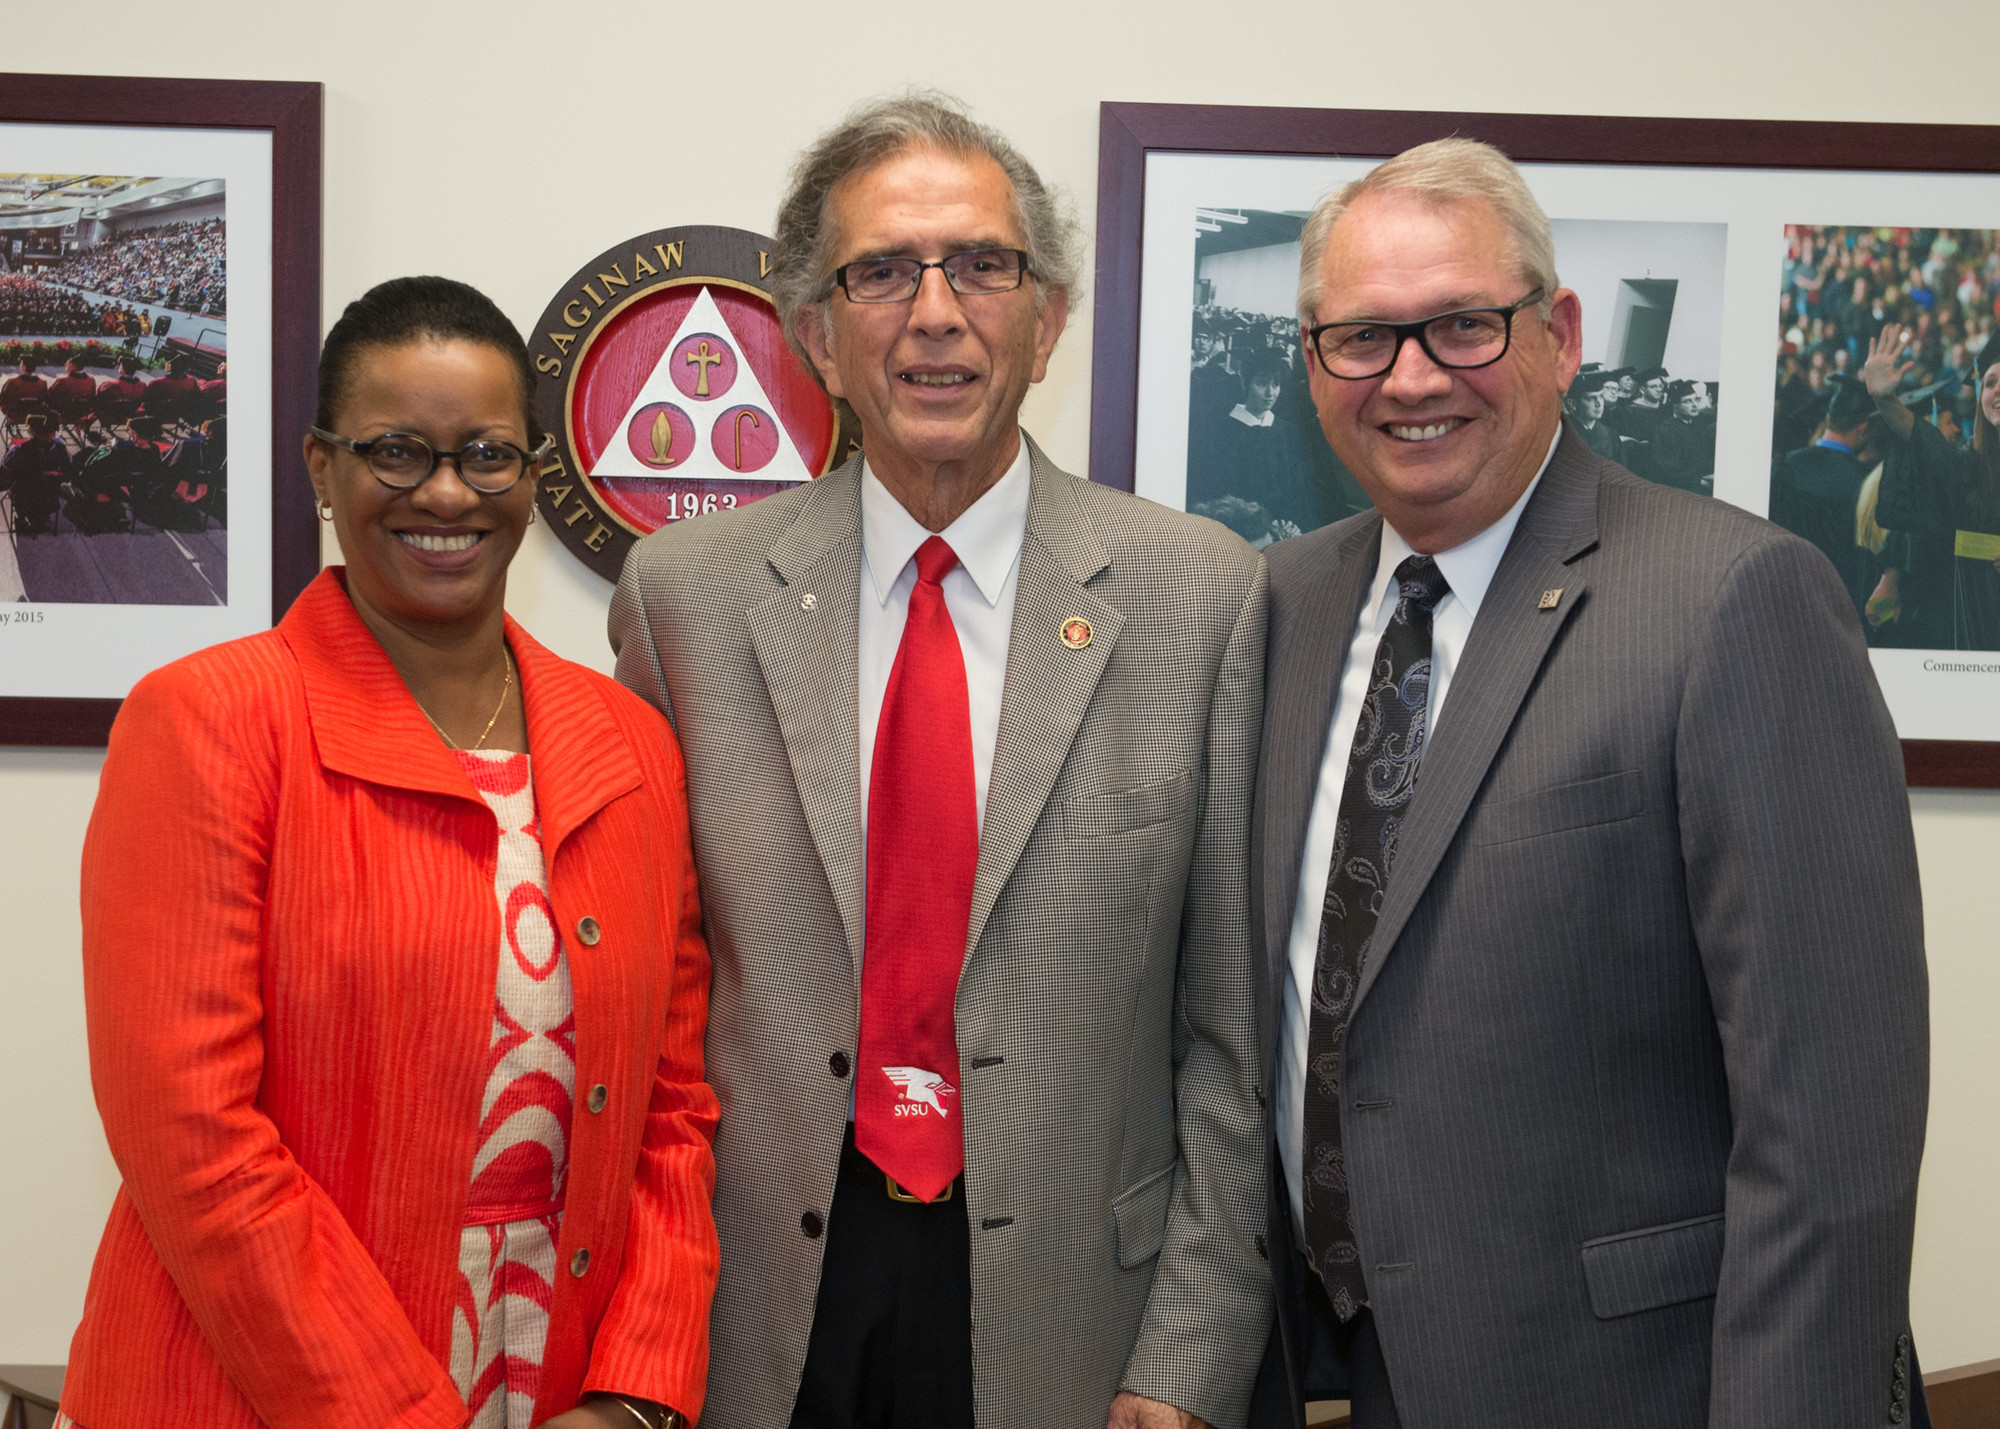 Cathy Ferguson and David Gamez with President Bachand at their last meeting in July 2017